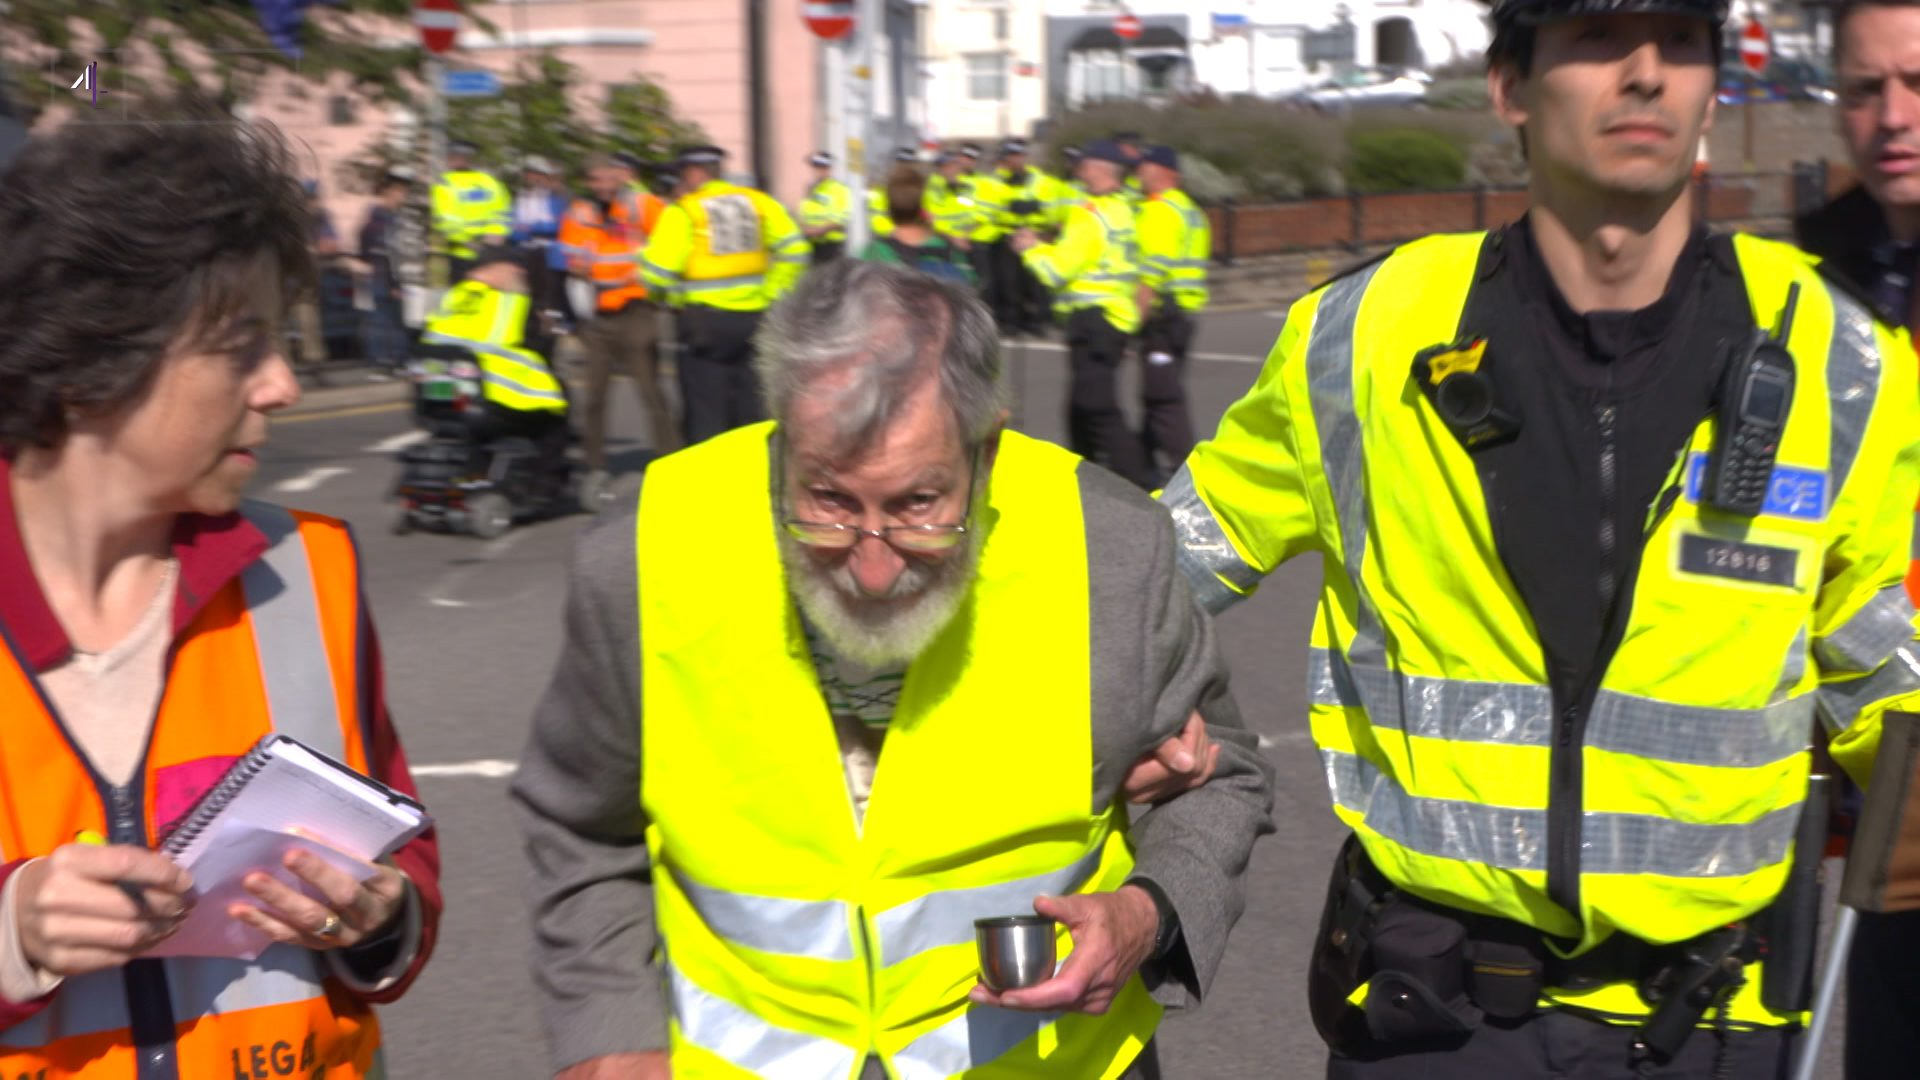 91-year-old among those arrested in Extinction Rebellion climate protest